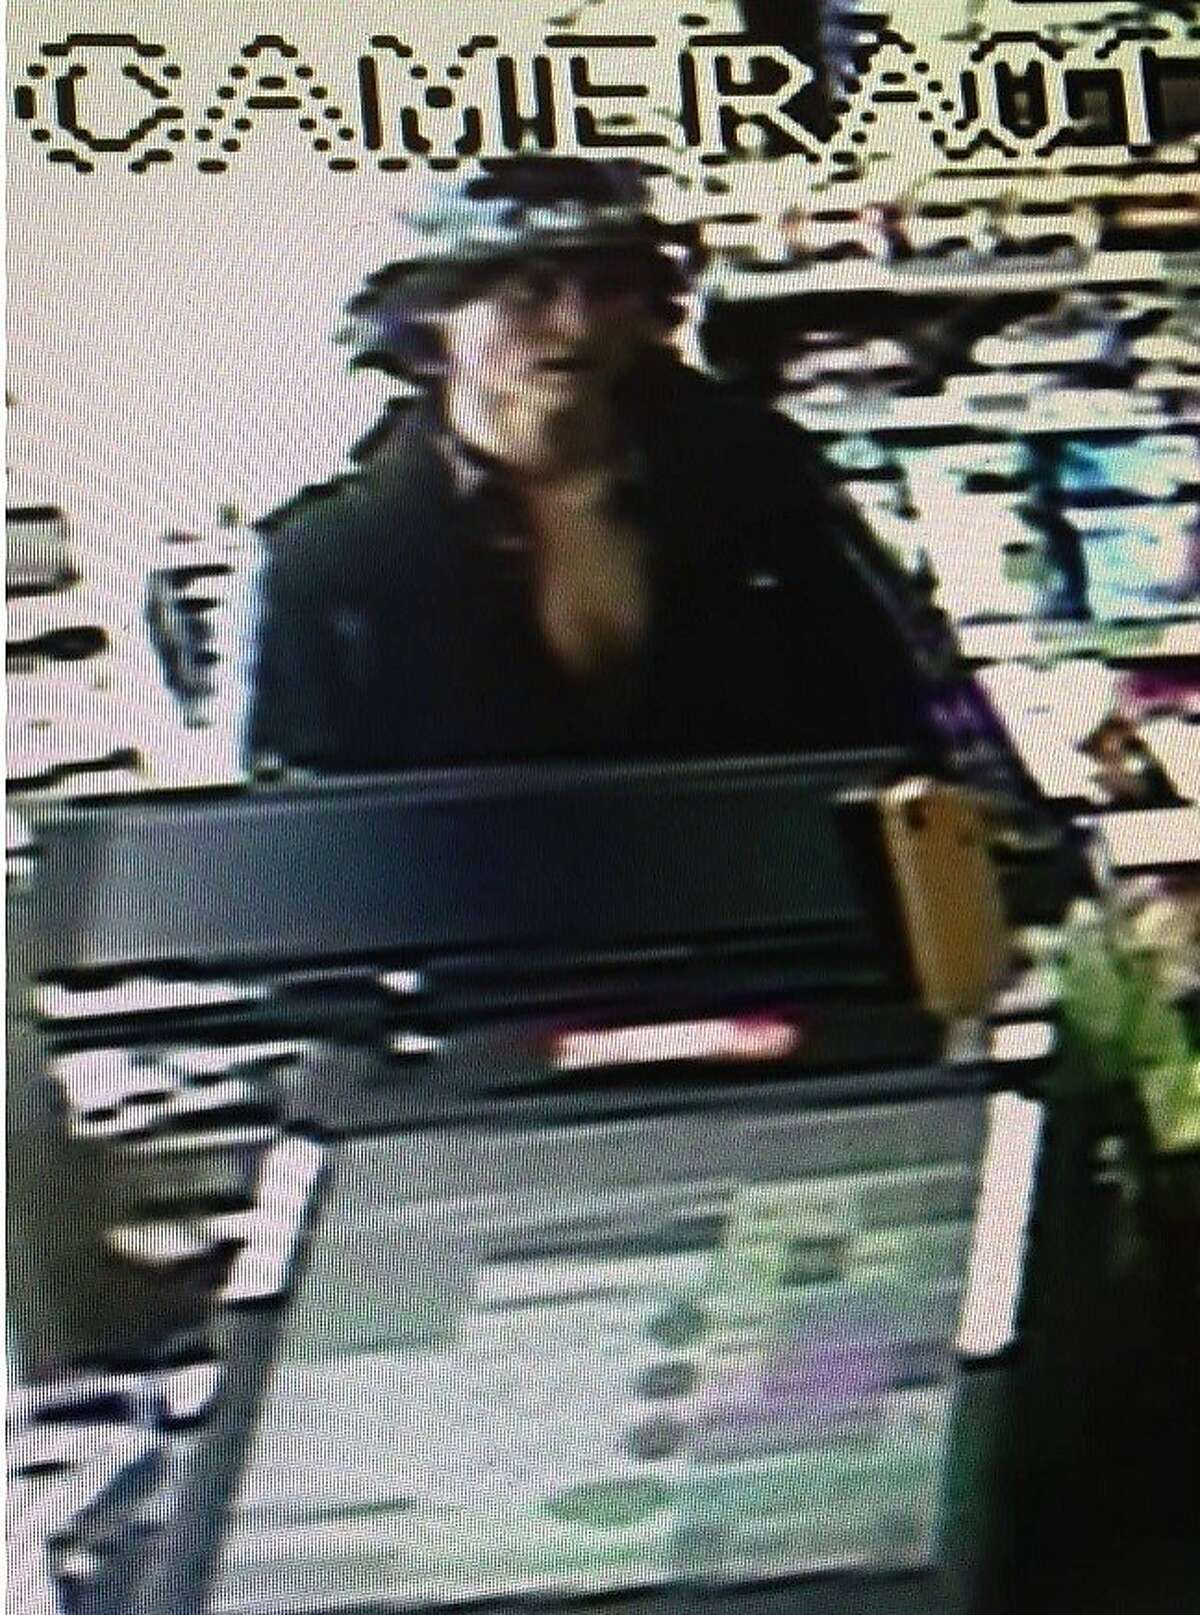 The Marin County Sheriff's Office has identifiedMorrison Haze Lampley, 23, as a suspect in the homicide of Steve Carter near Fairfax. This photo was taken in a convenience store in Fairfax.